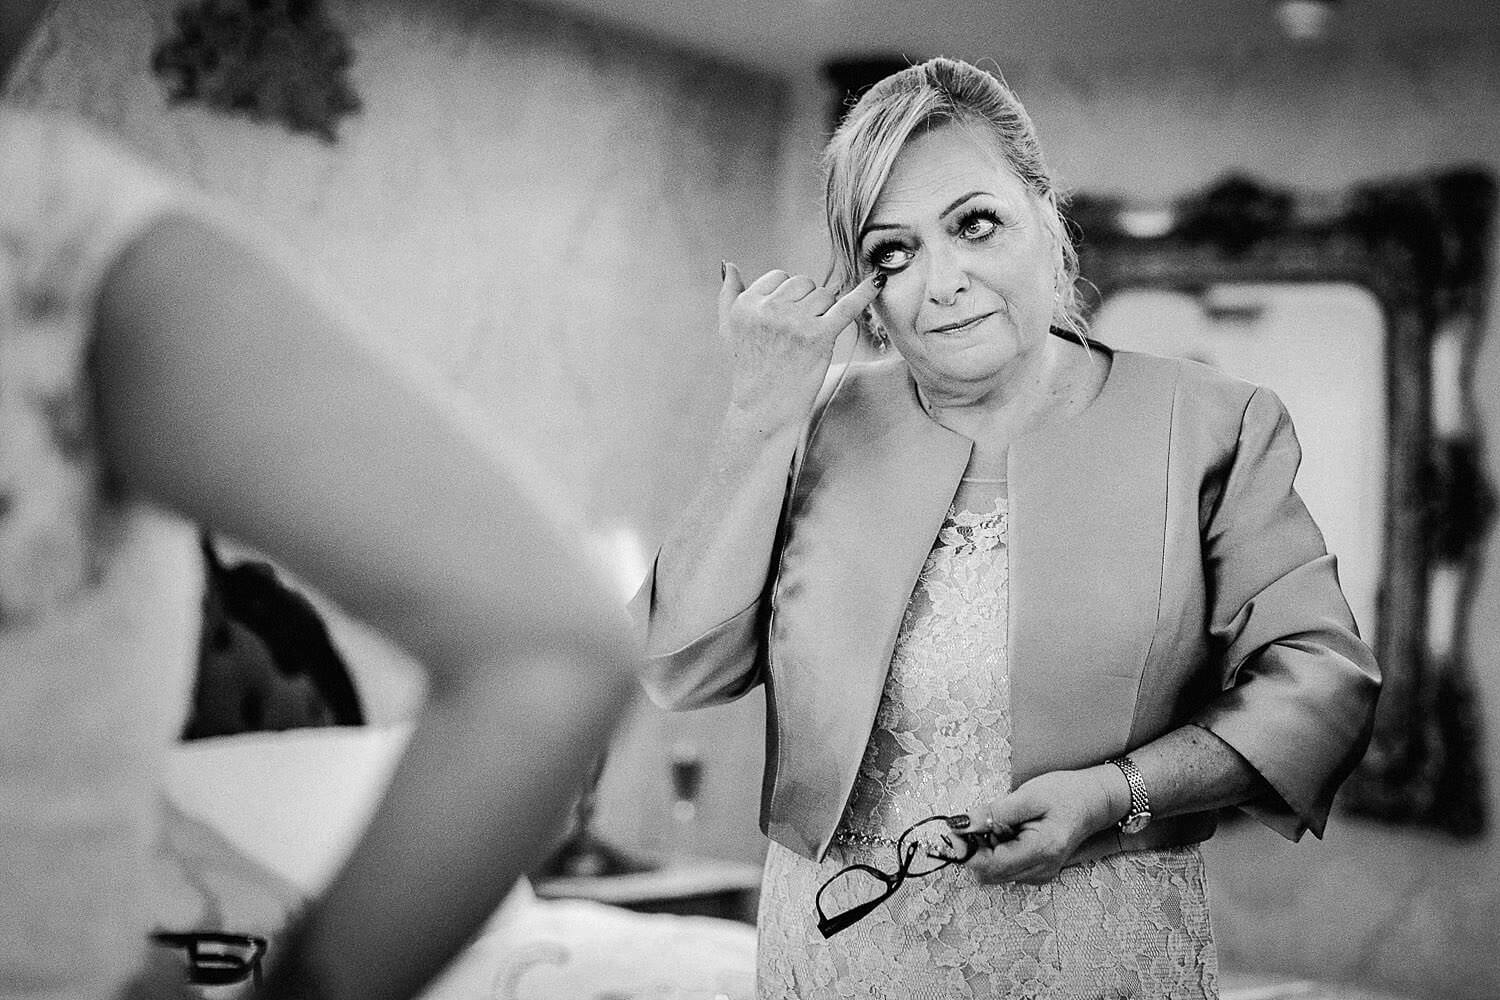 Mum whipping tear upon seeing daughter in wedding dress Royal Liver Building wedding photography